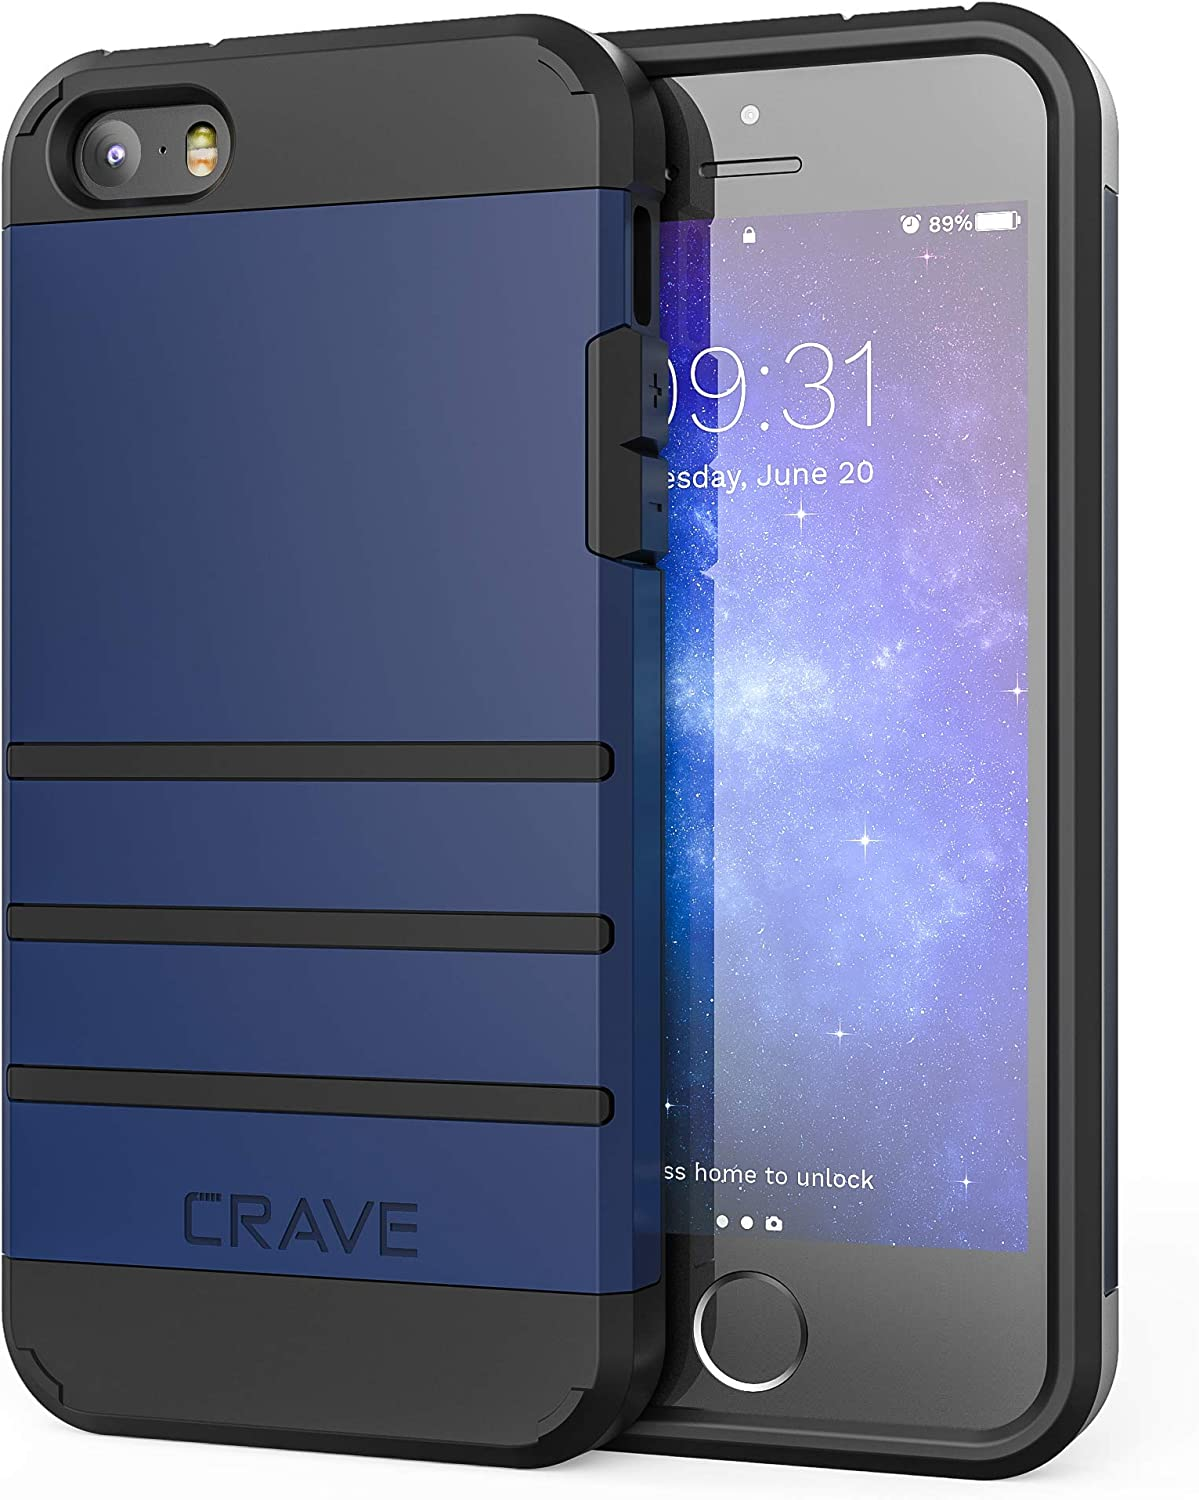 iPhone SE [2016](1st gen) Case, iPhone 5s Case, Crave Strong Guard Protection Series Case for iPhone 5 5s SE - Navy